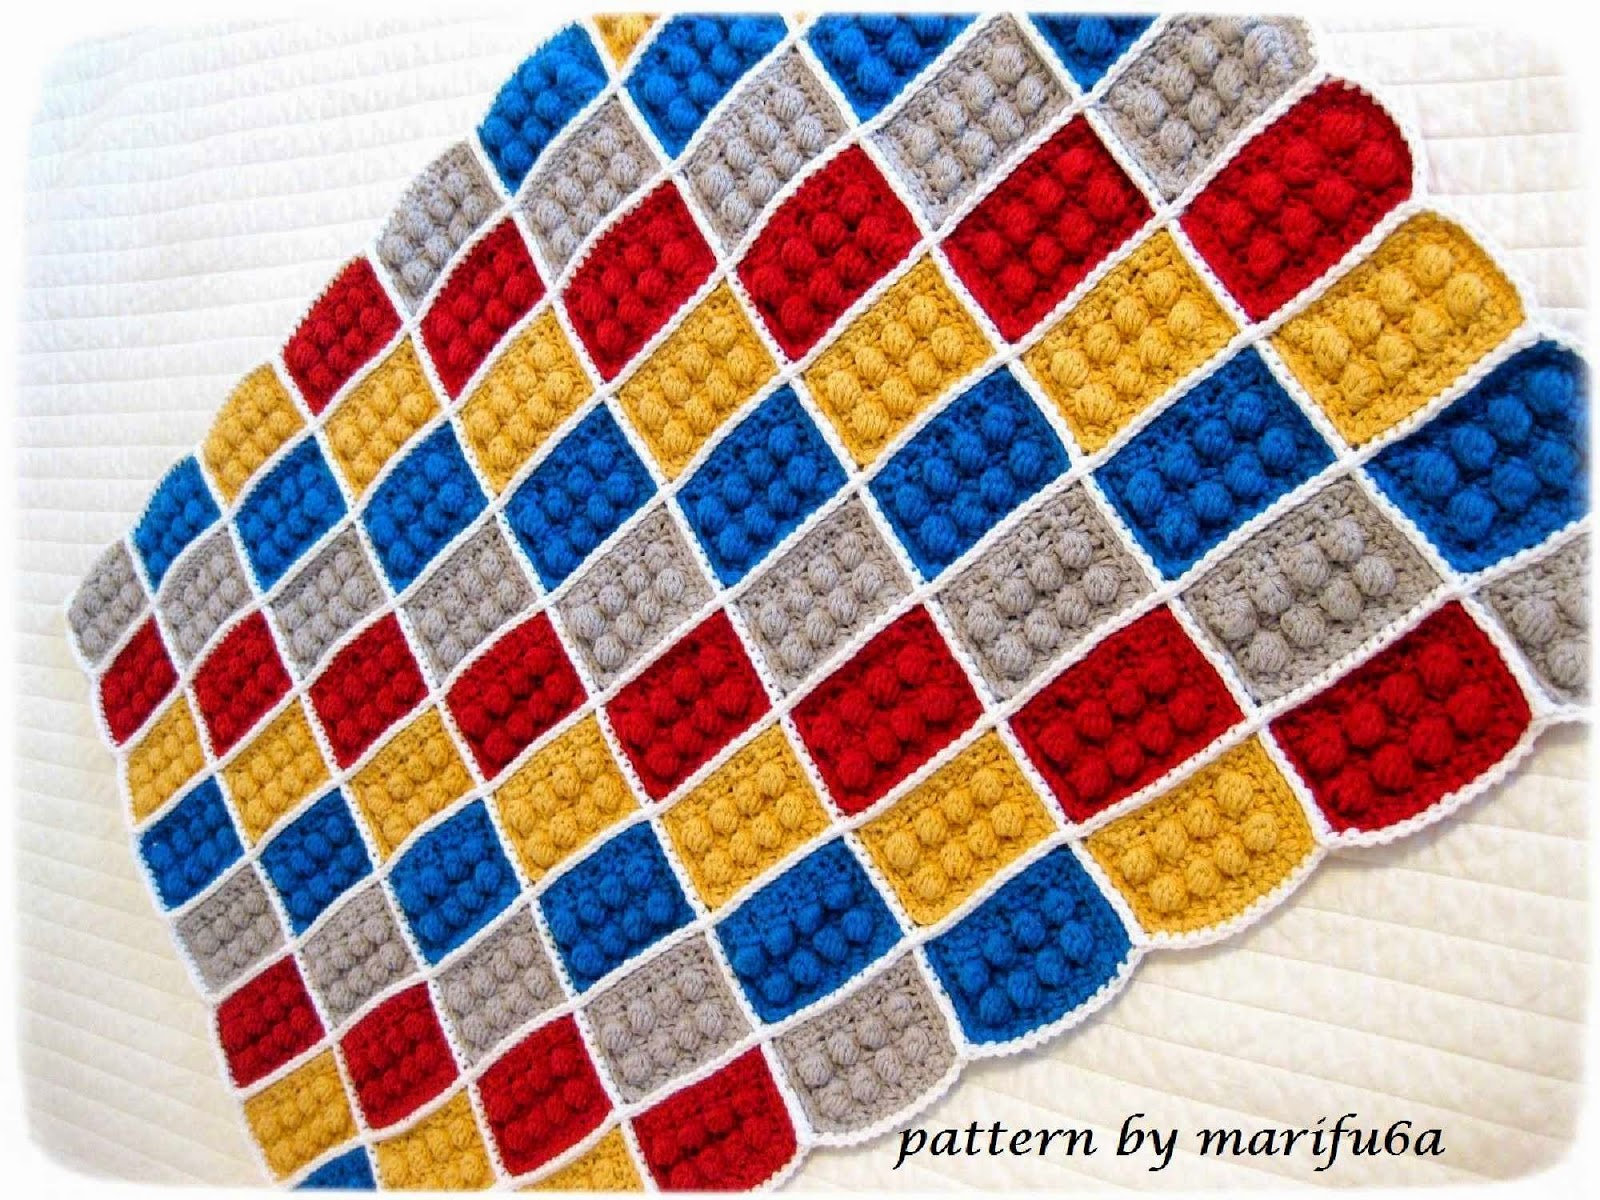 Crochet Lego Blanket : how to crochet lego blanket free pattern tutorial